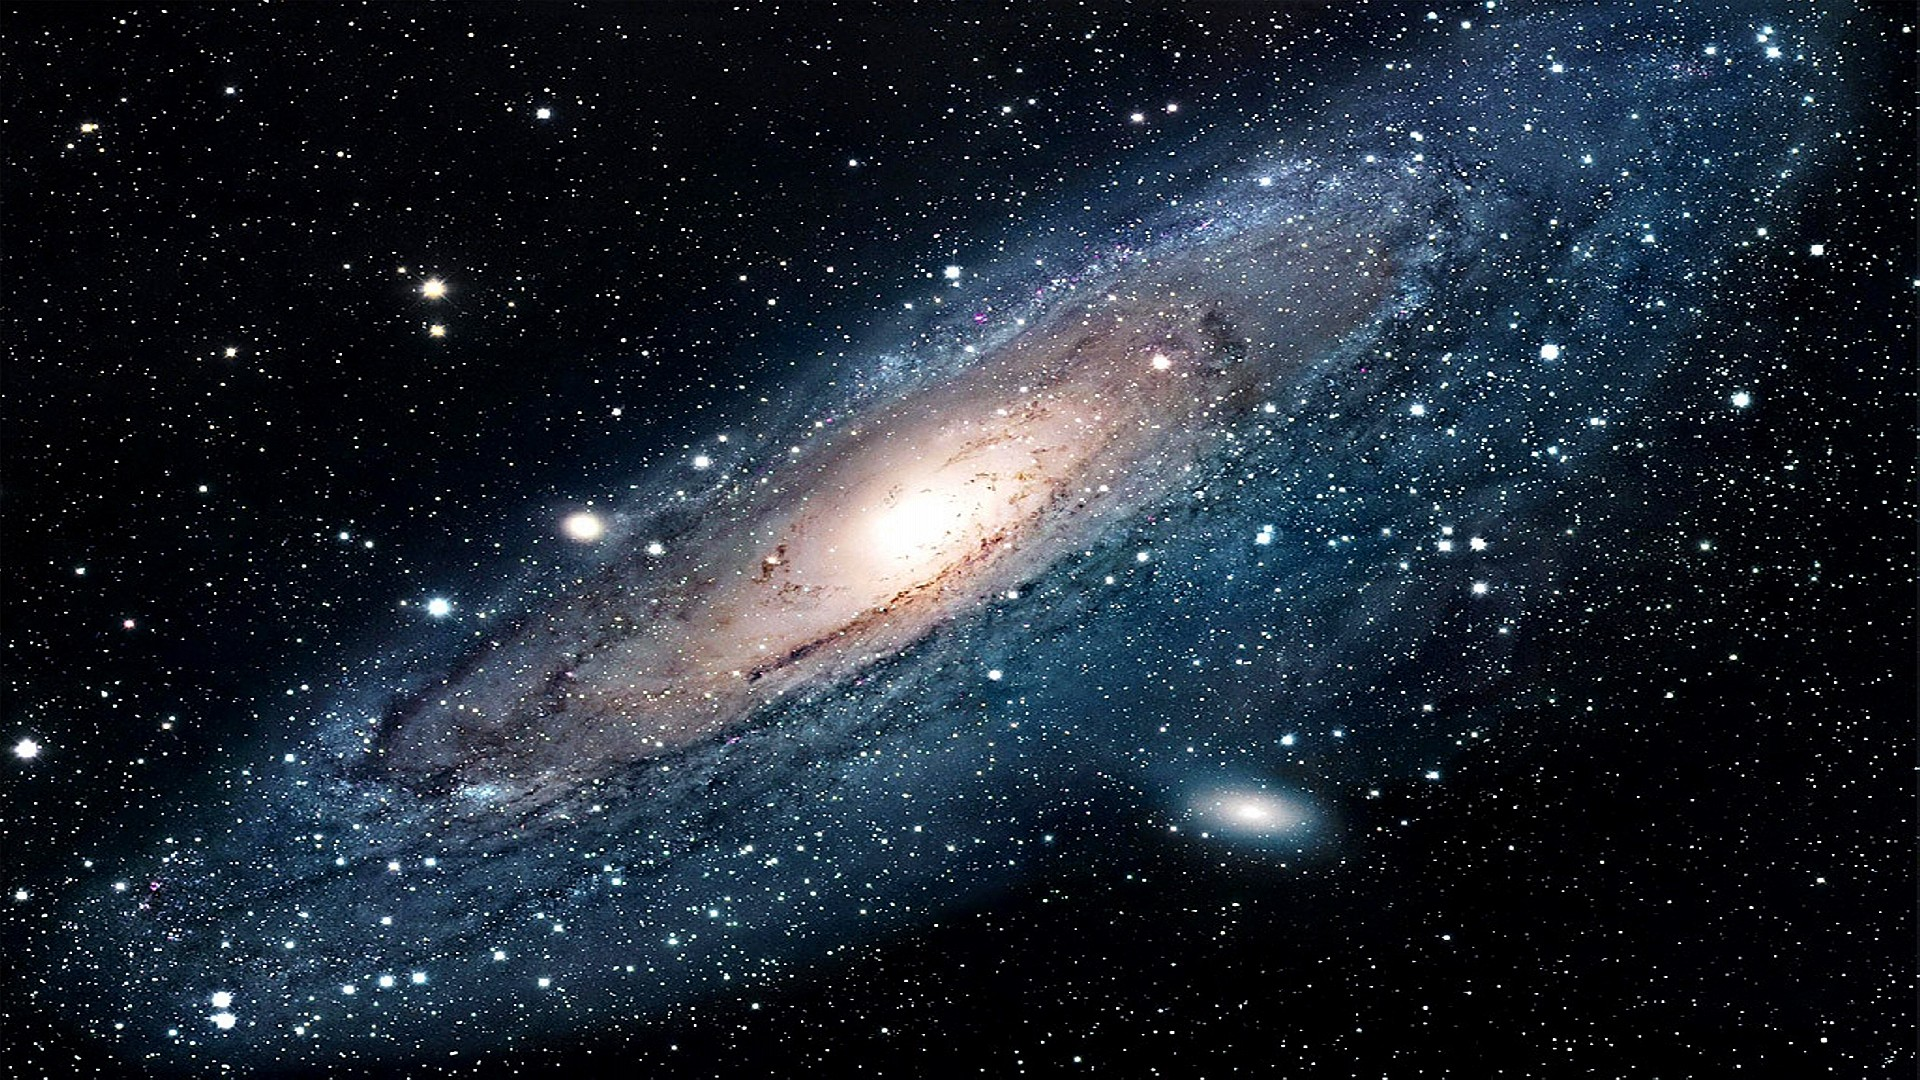 1920x1080 space galaxy desktop wallpapers galaxy space images